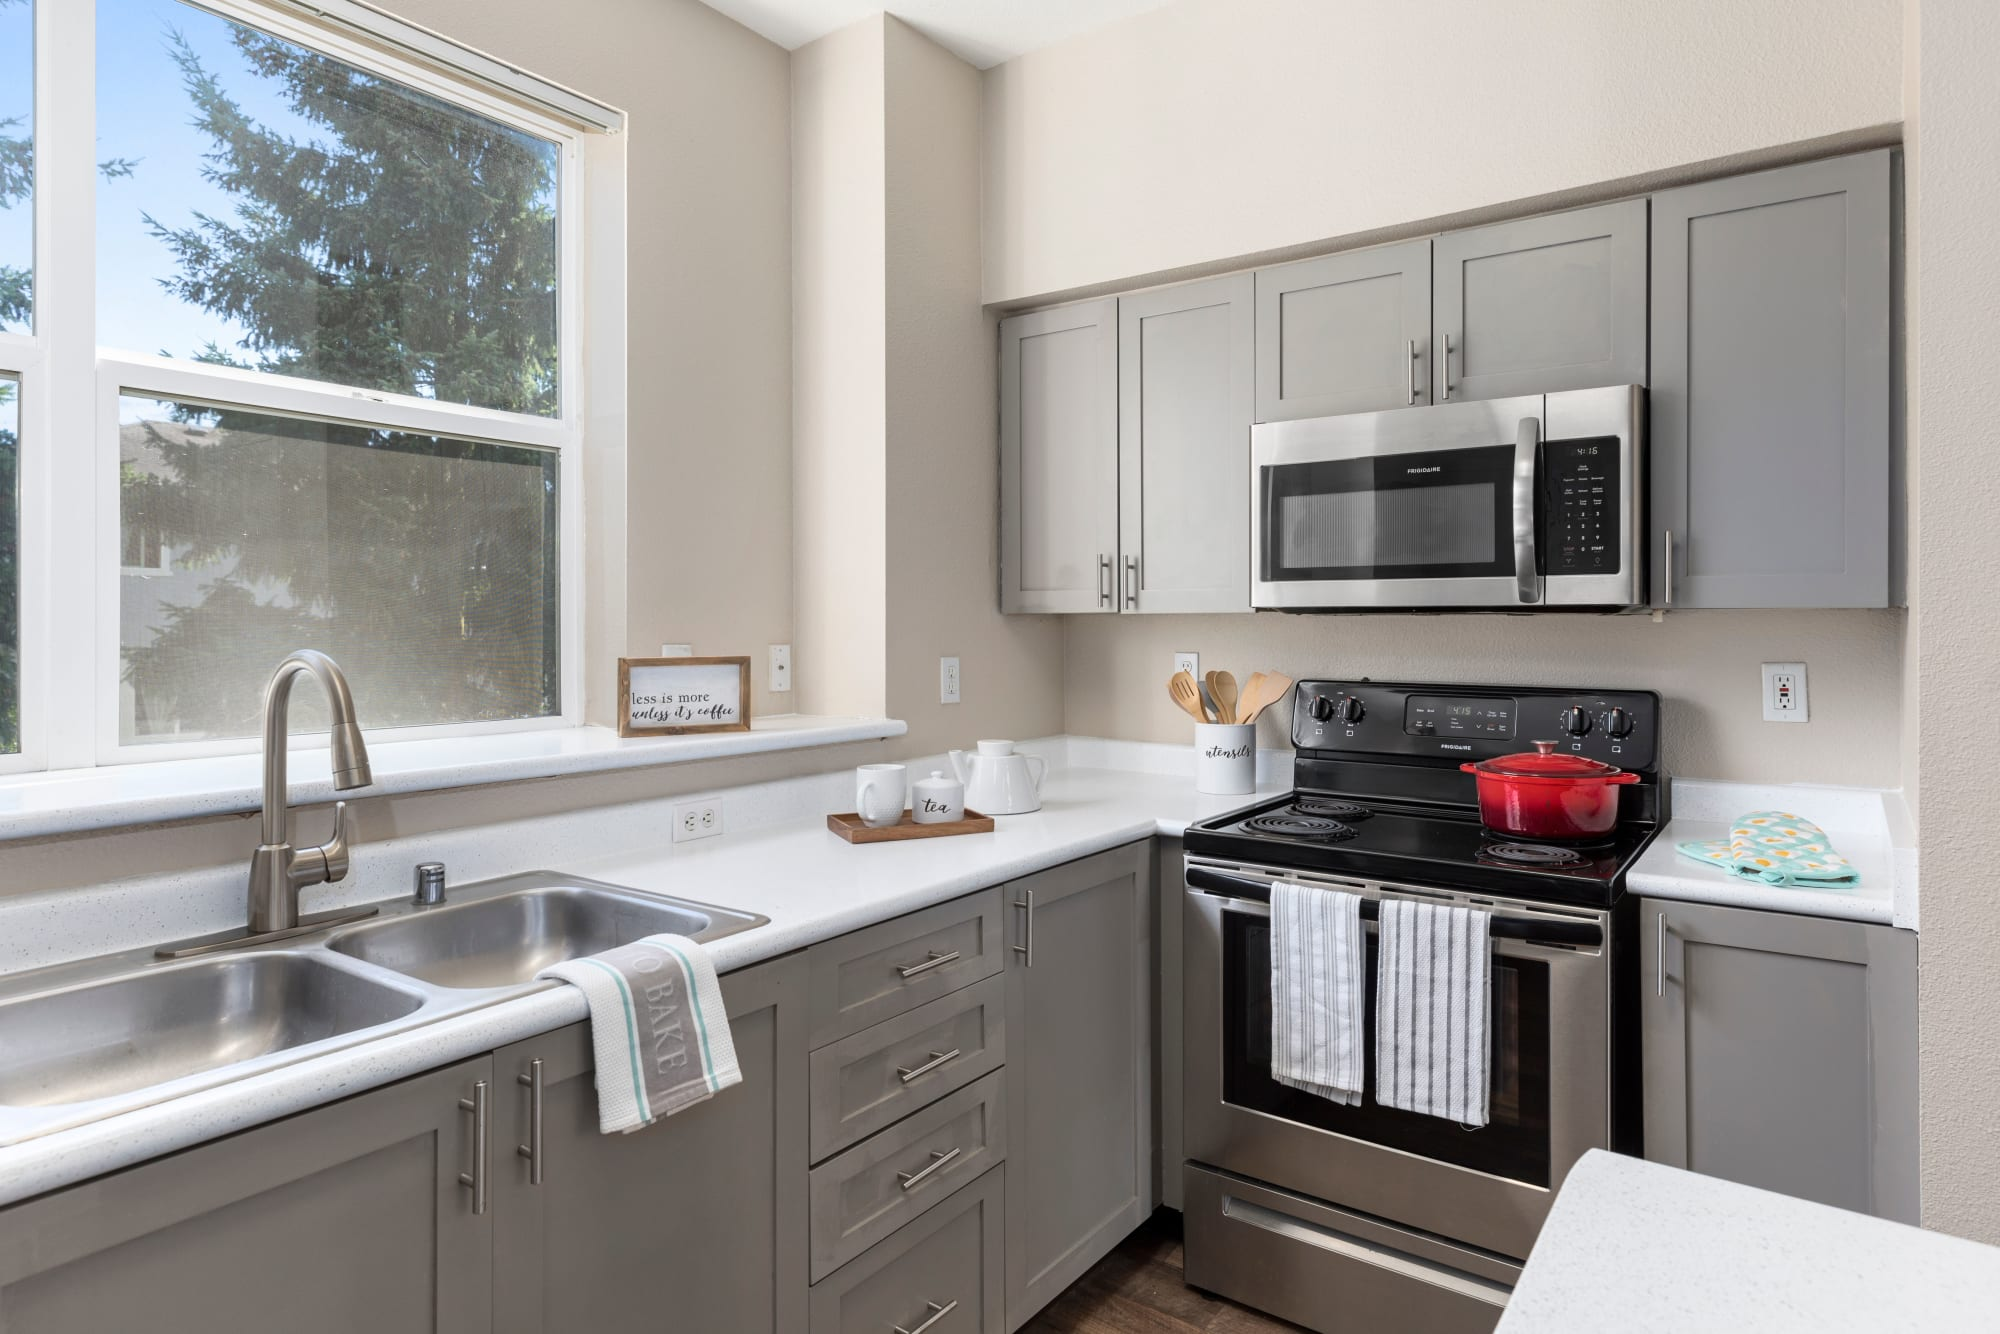 Kitchen with stainless steel appliances at HighGrove Apartments in Everett, WA